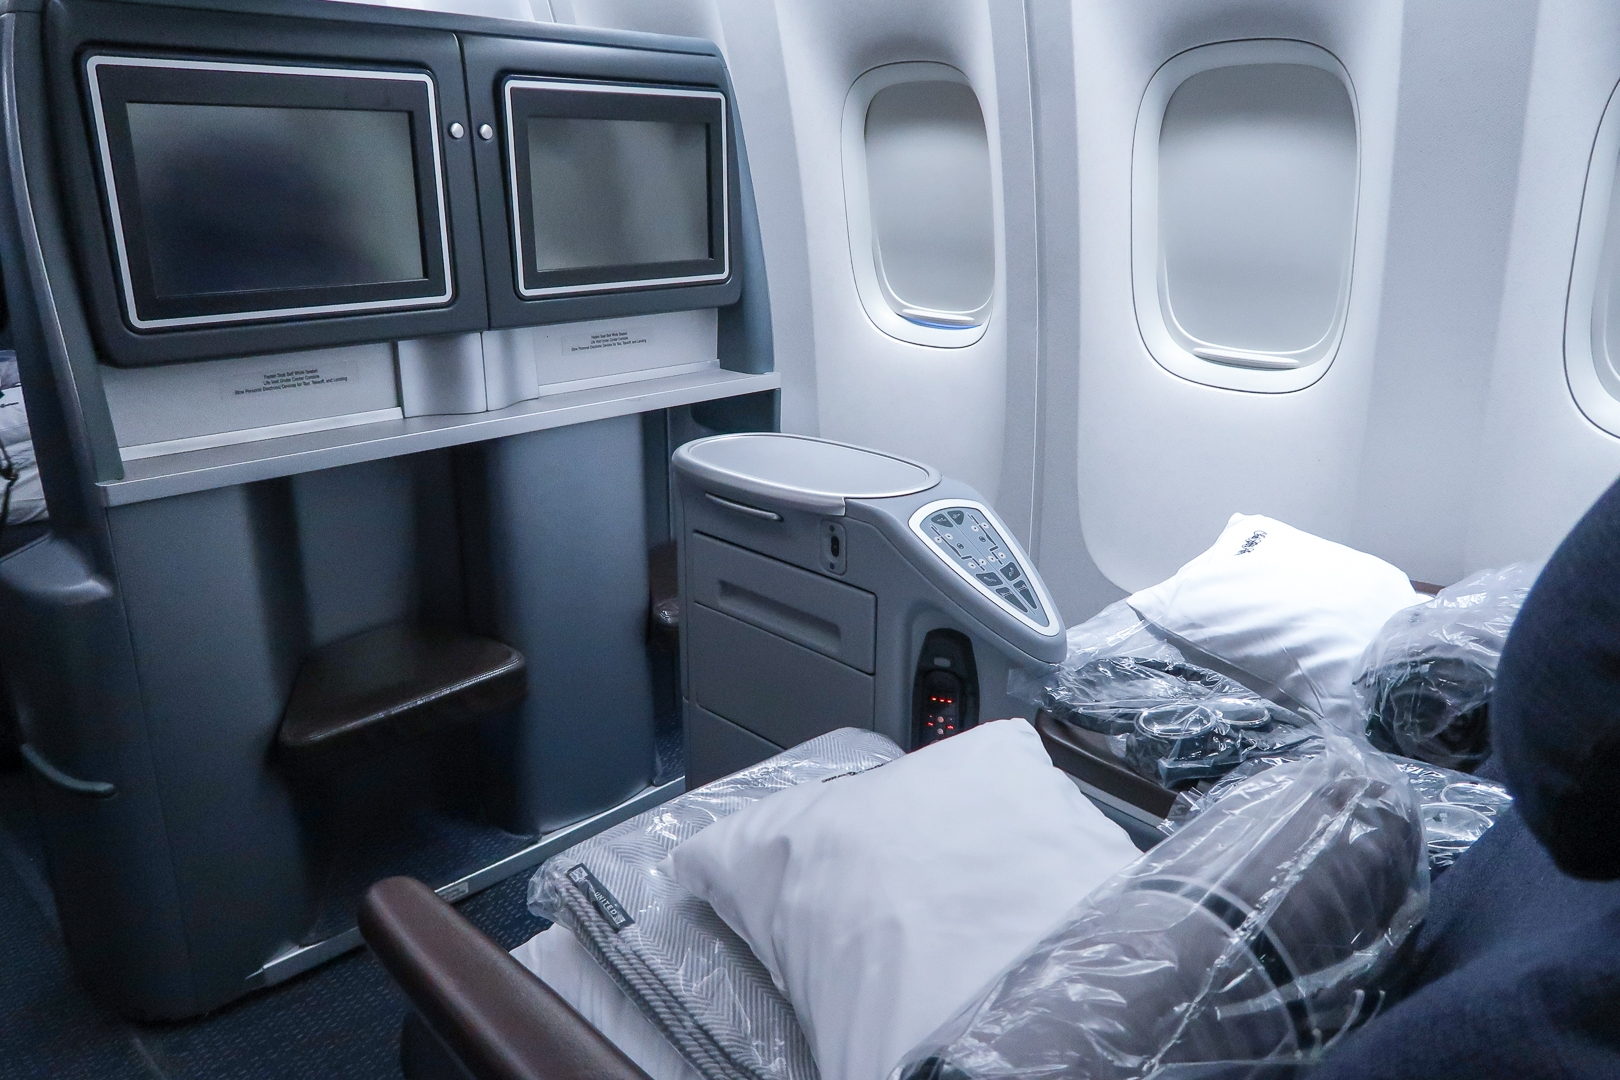 What is it like to experience flying on United Airlines Polaris 777-200 from Washington D.C. to London?